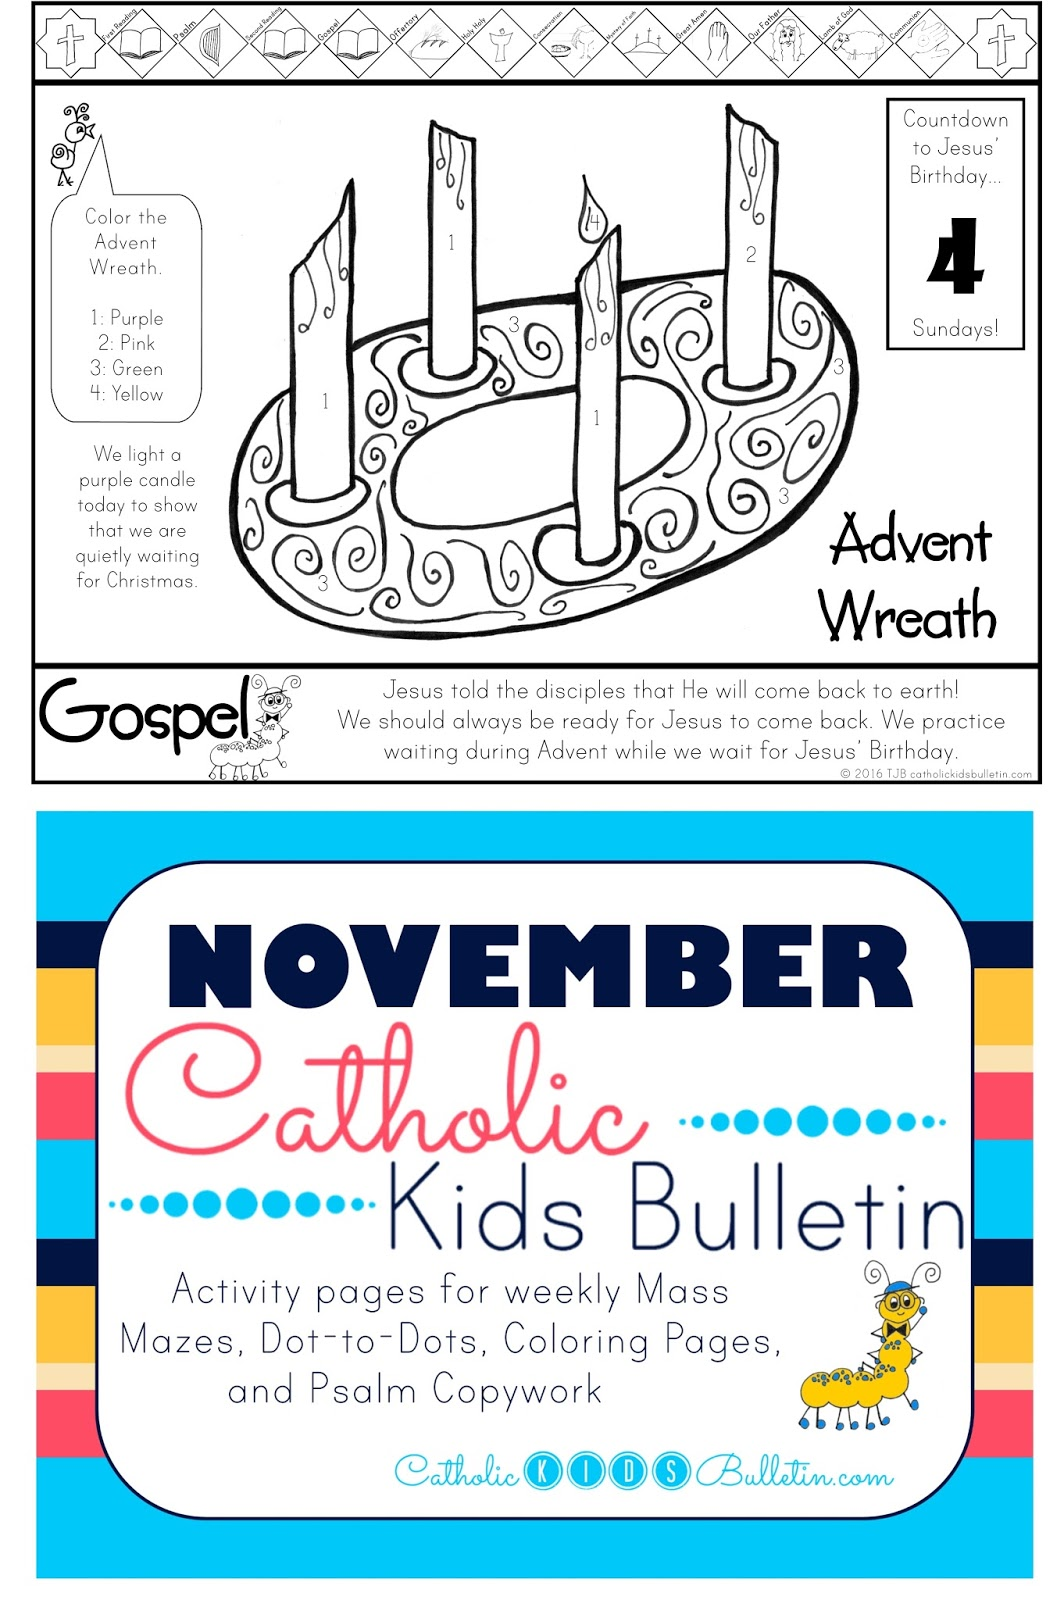 Catholic Kids November Catholic Kids Bulletin